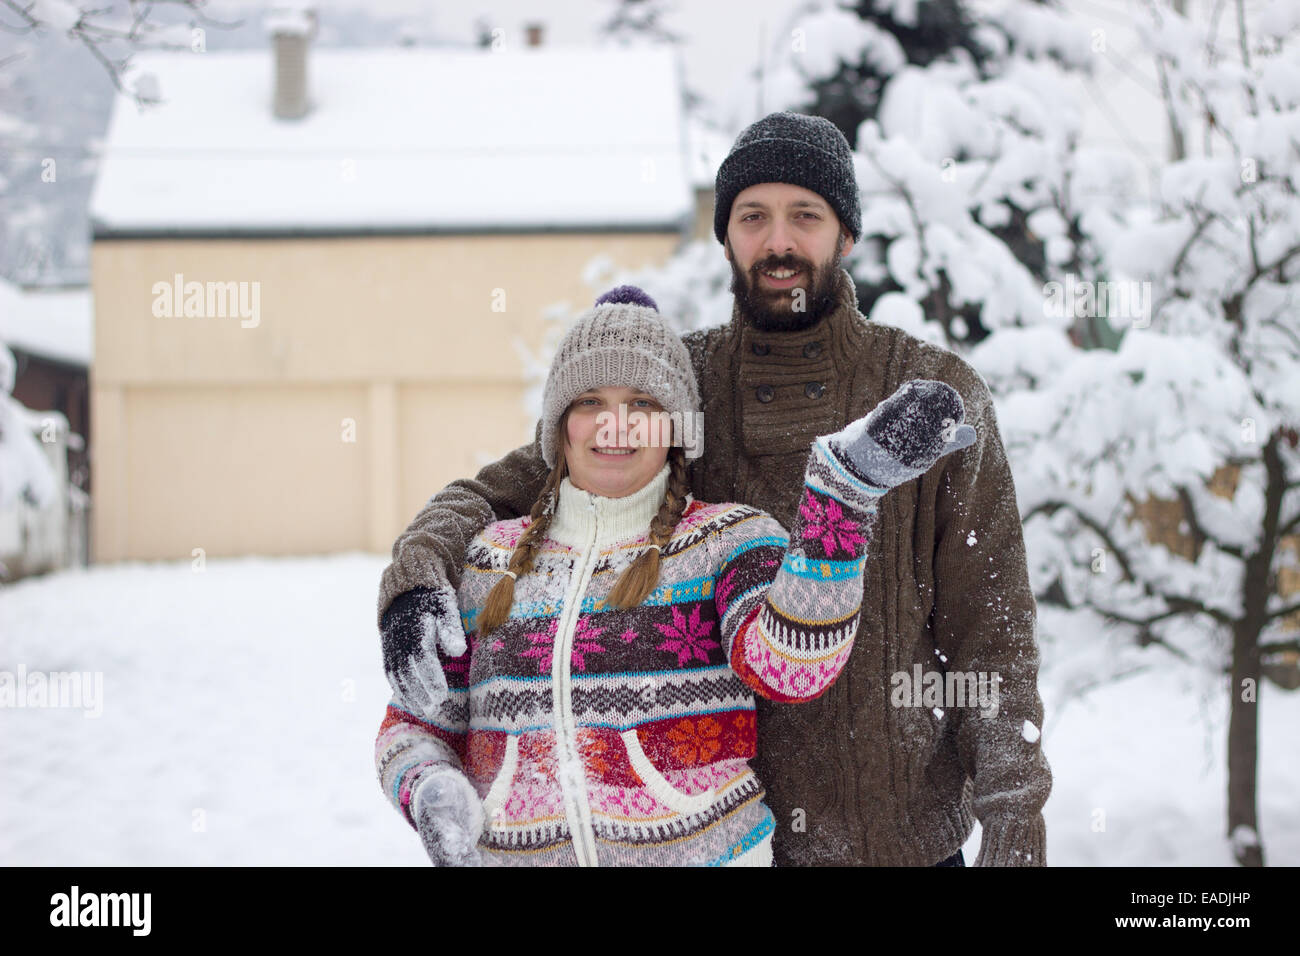 Cute hipster couple covered in snow, enjoying winter vacation - Stock Image